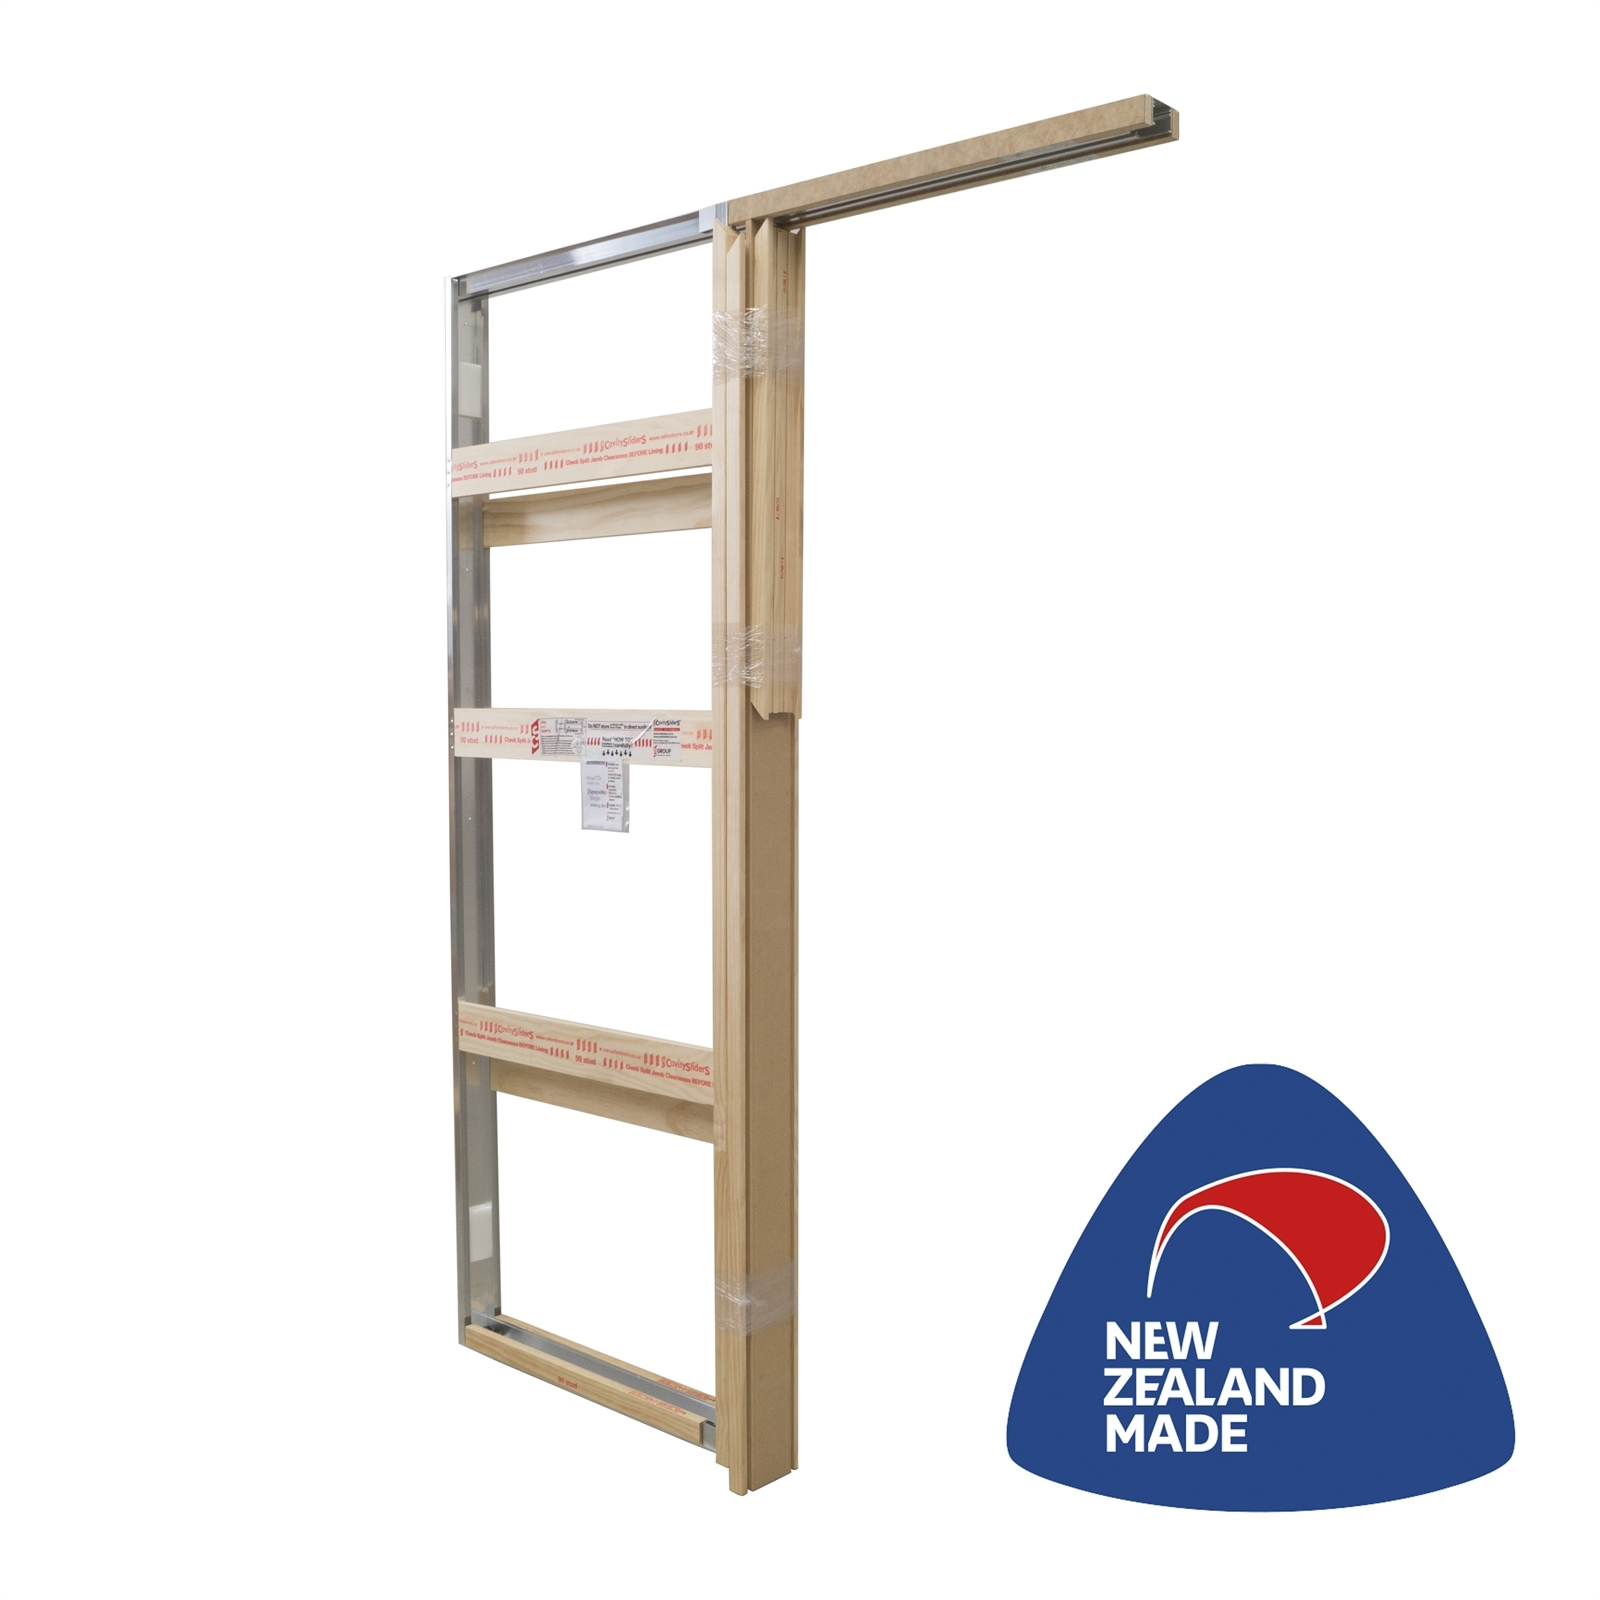 CS SpaceMaker 1980x760x90mm Grooved Cavity Slider